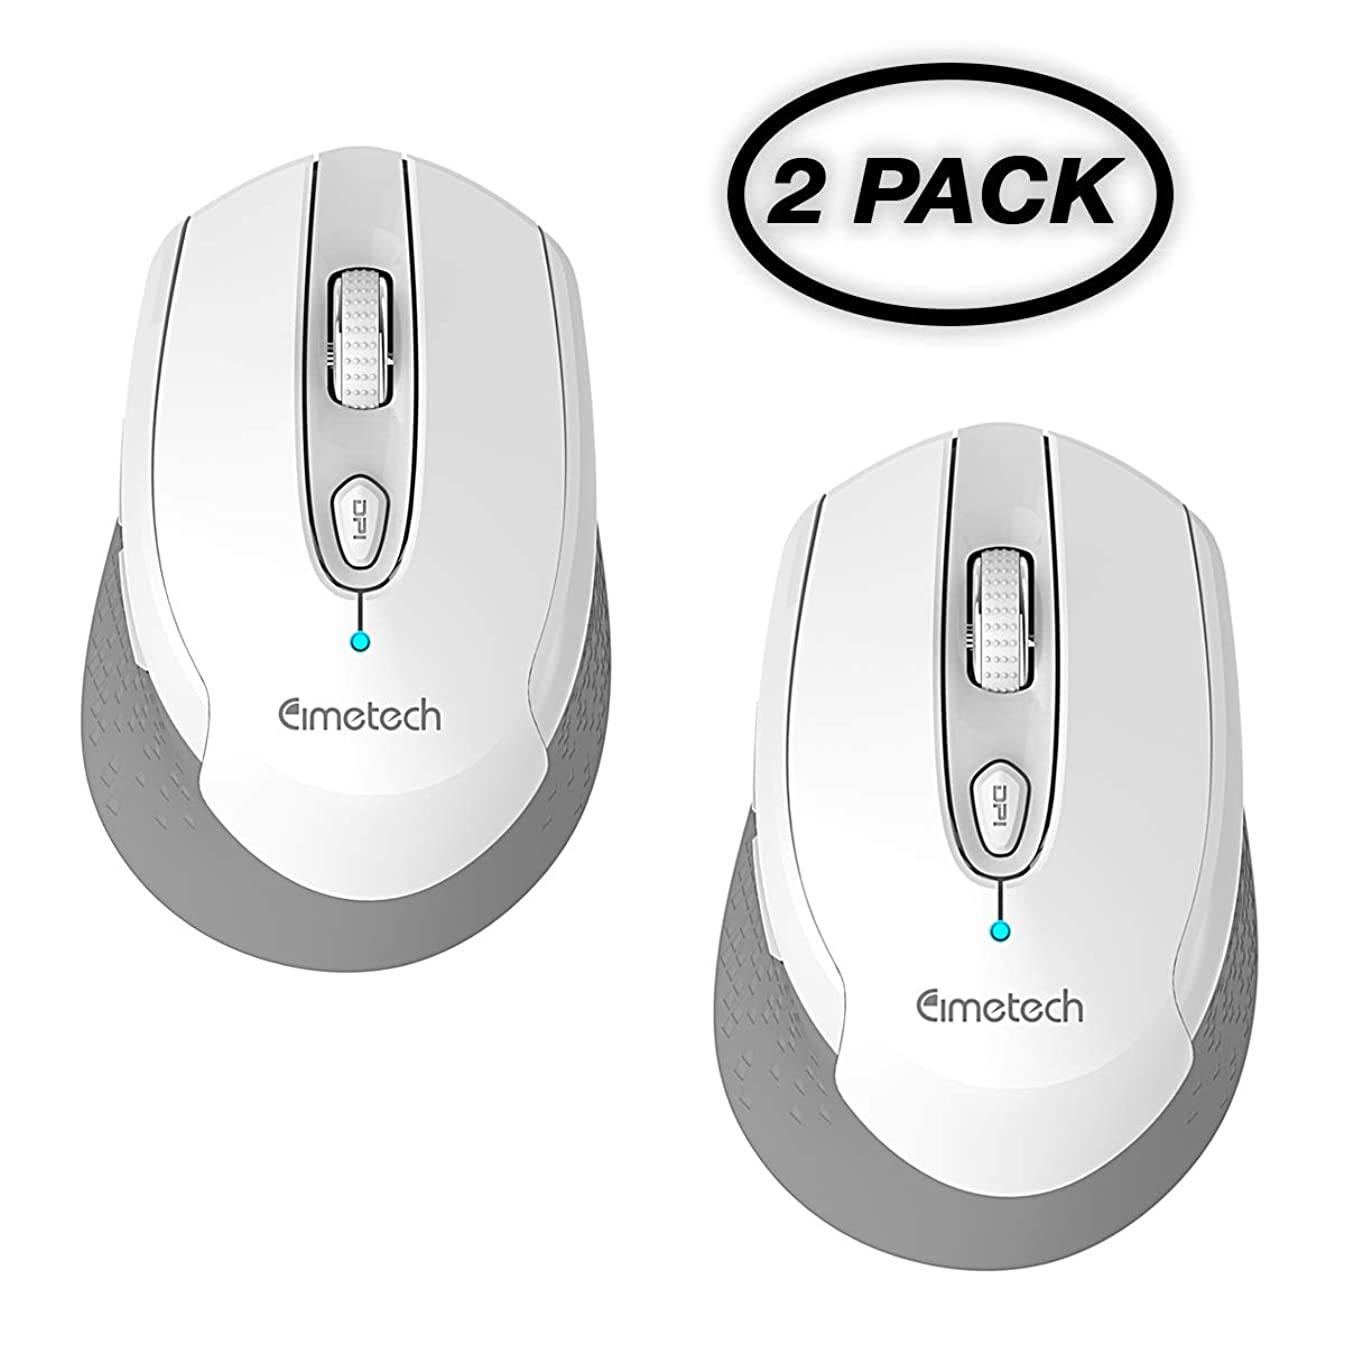 Wireless Mouse for Laptop, cimetech 2.4G Cordless Mouse with USB Receiver, Noiseless and Silent Computer Mice with 3200 DPI 6 Buttons, Battery Included (2PACK)